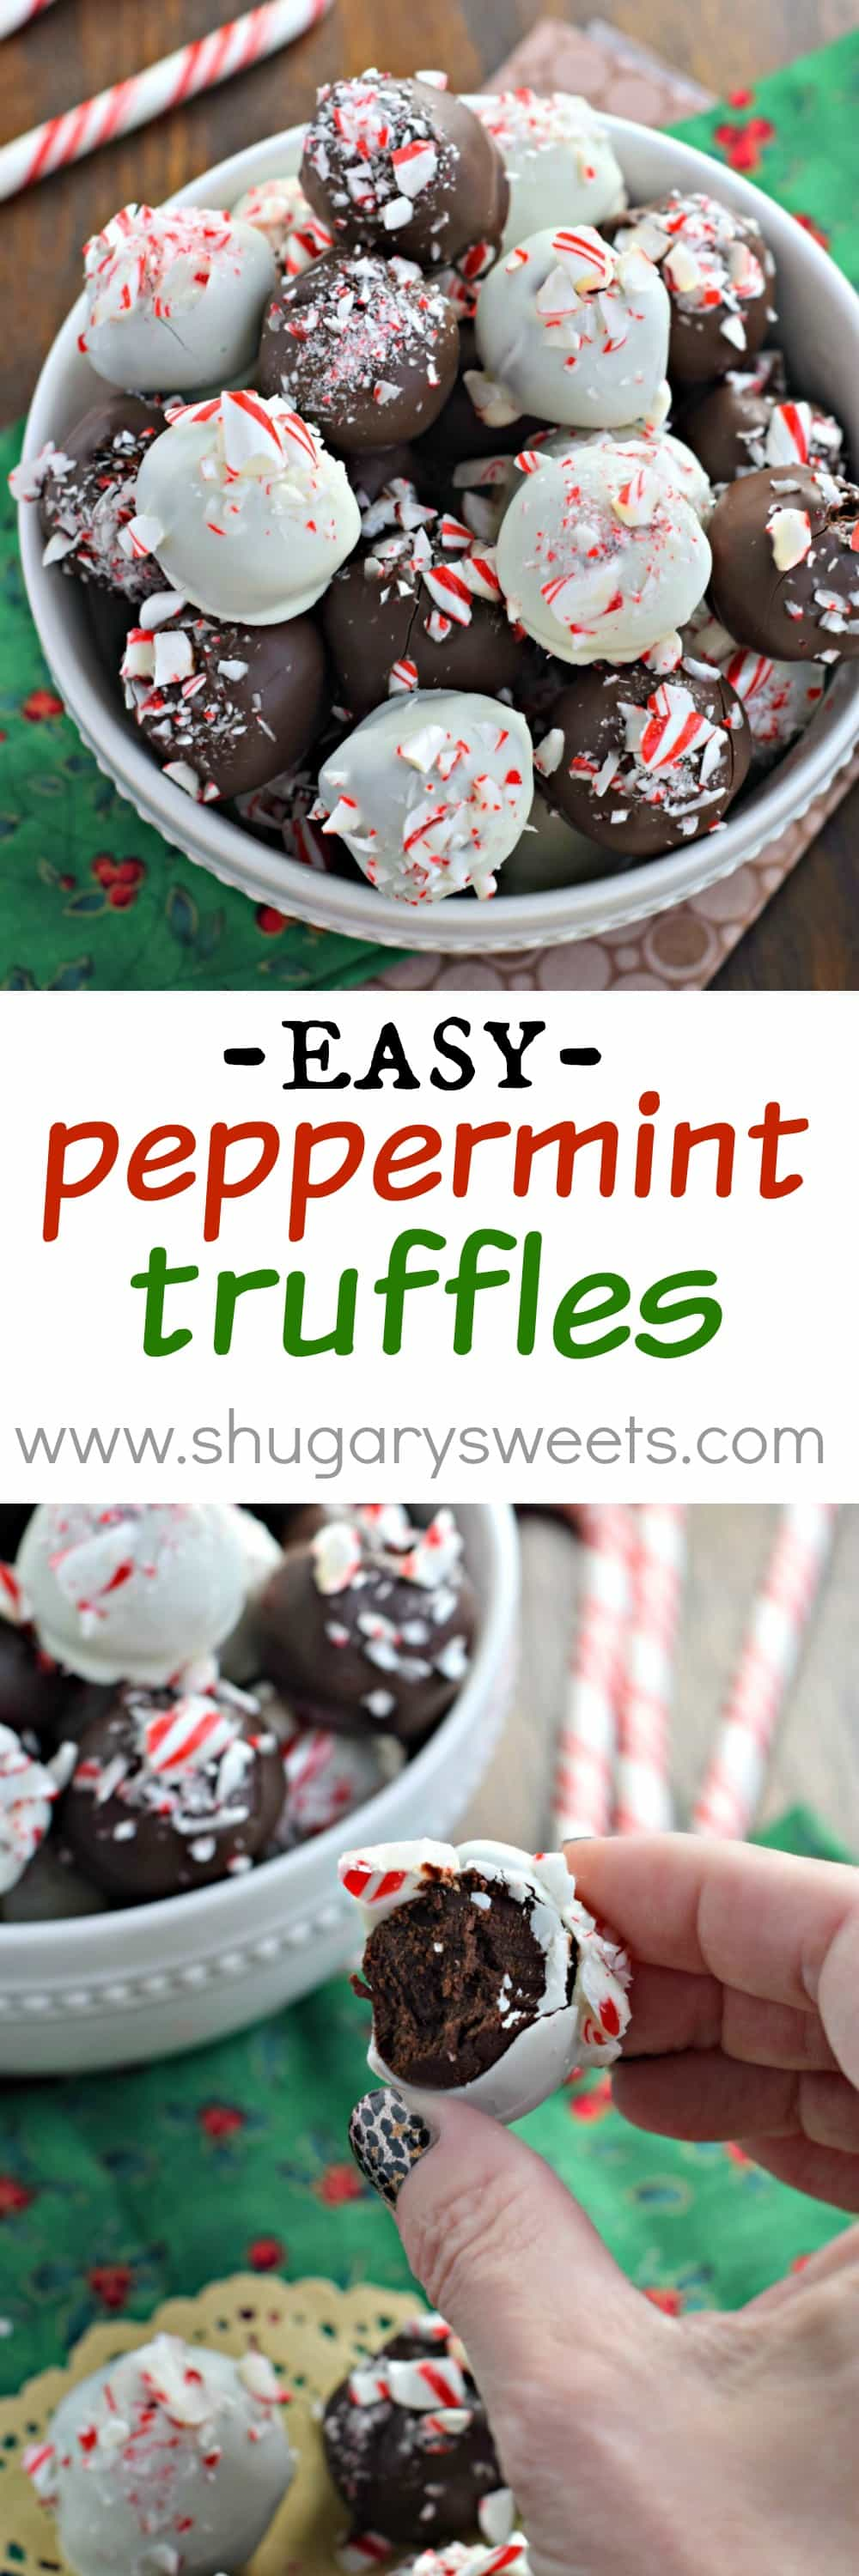 Peppermint Truffles - Shugary Sweets